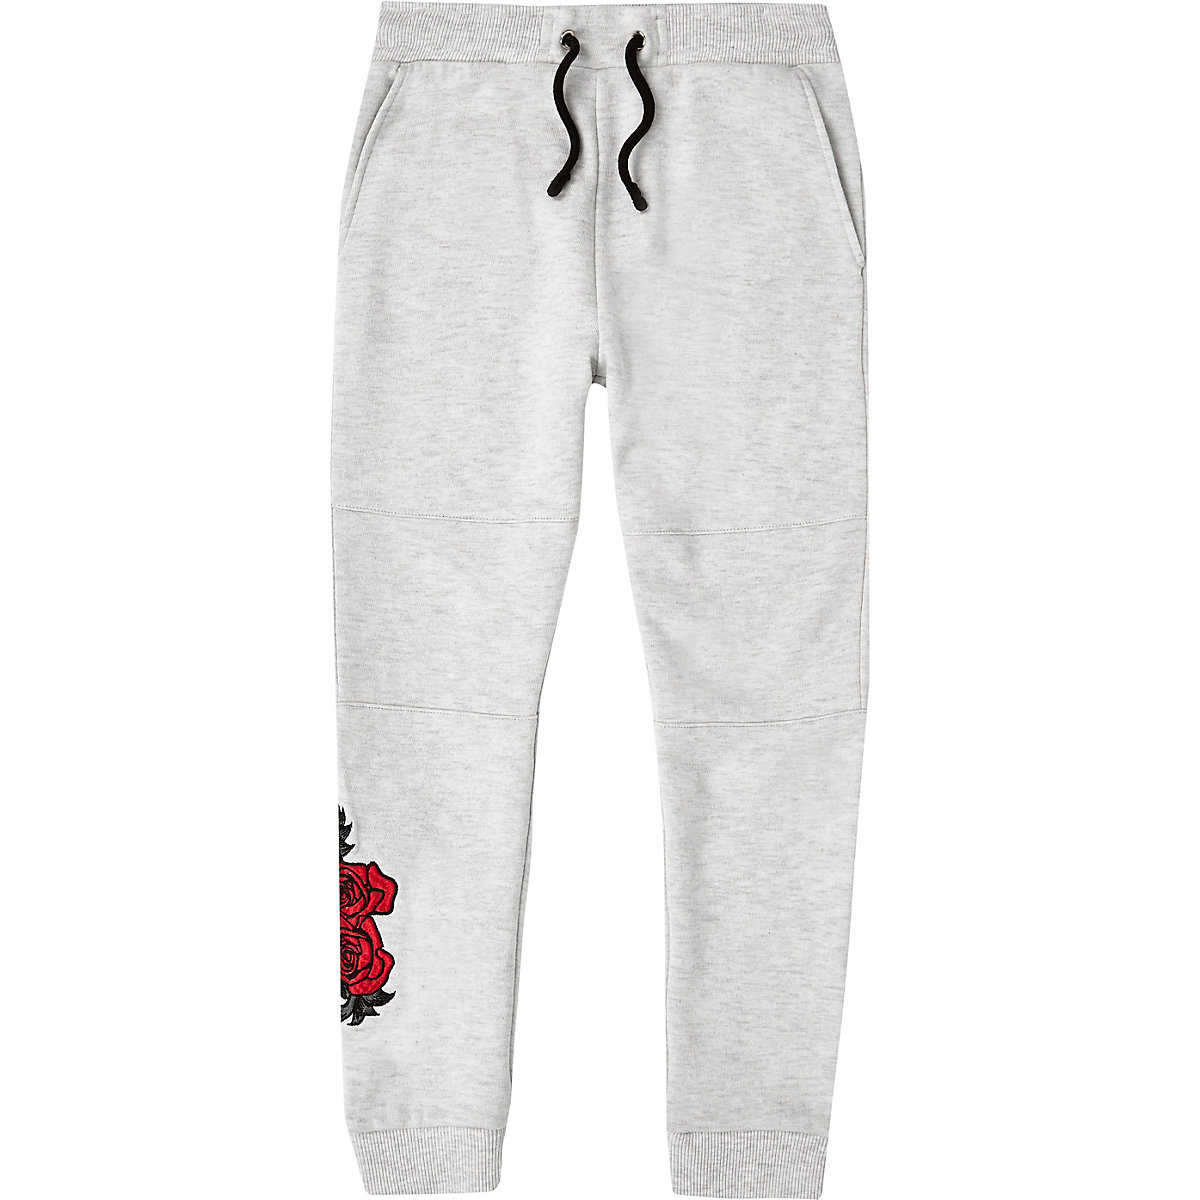 Boys grey rose embroidered joggers